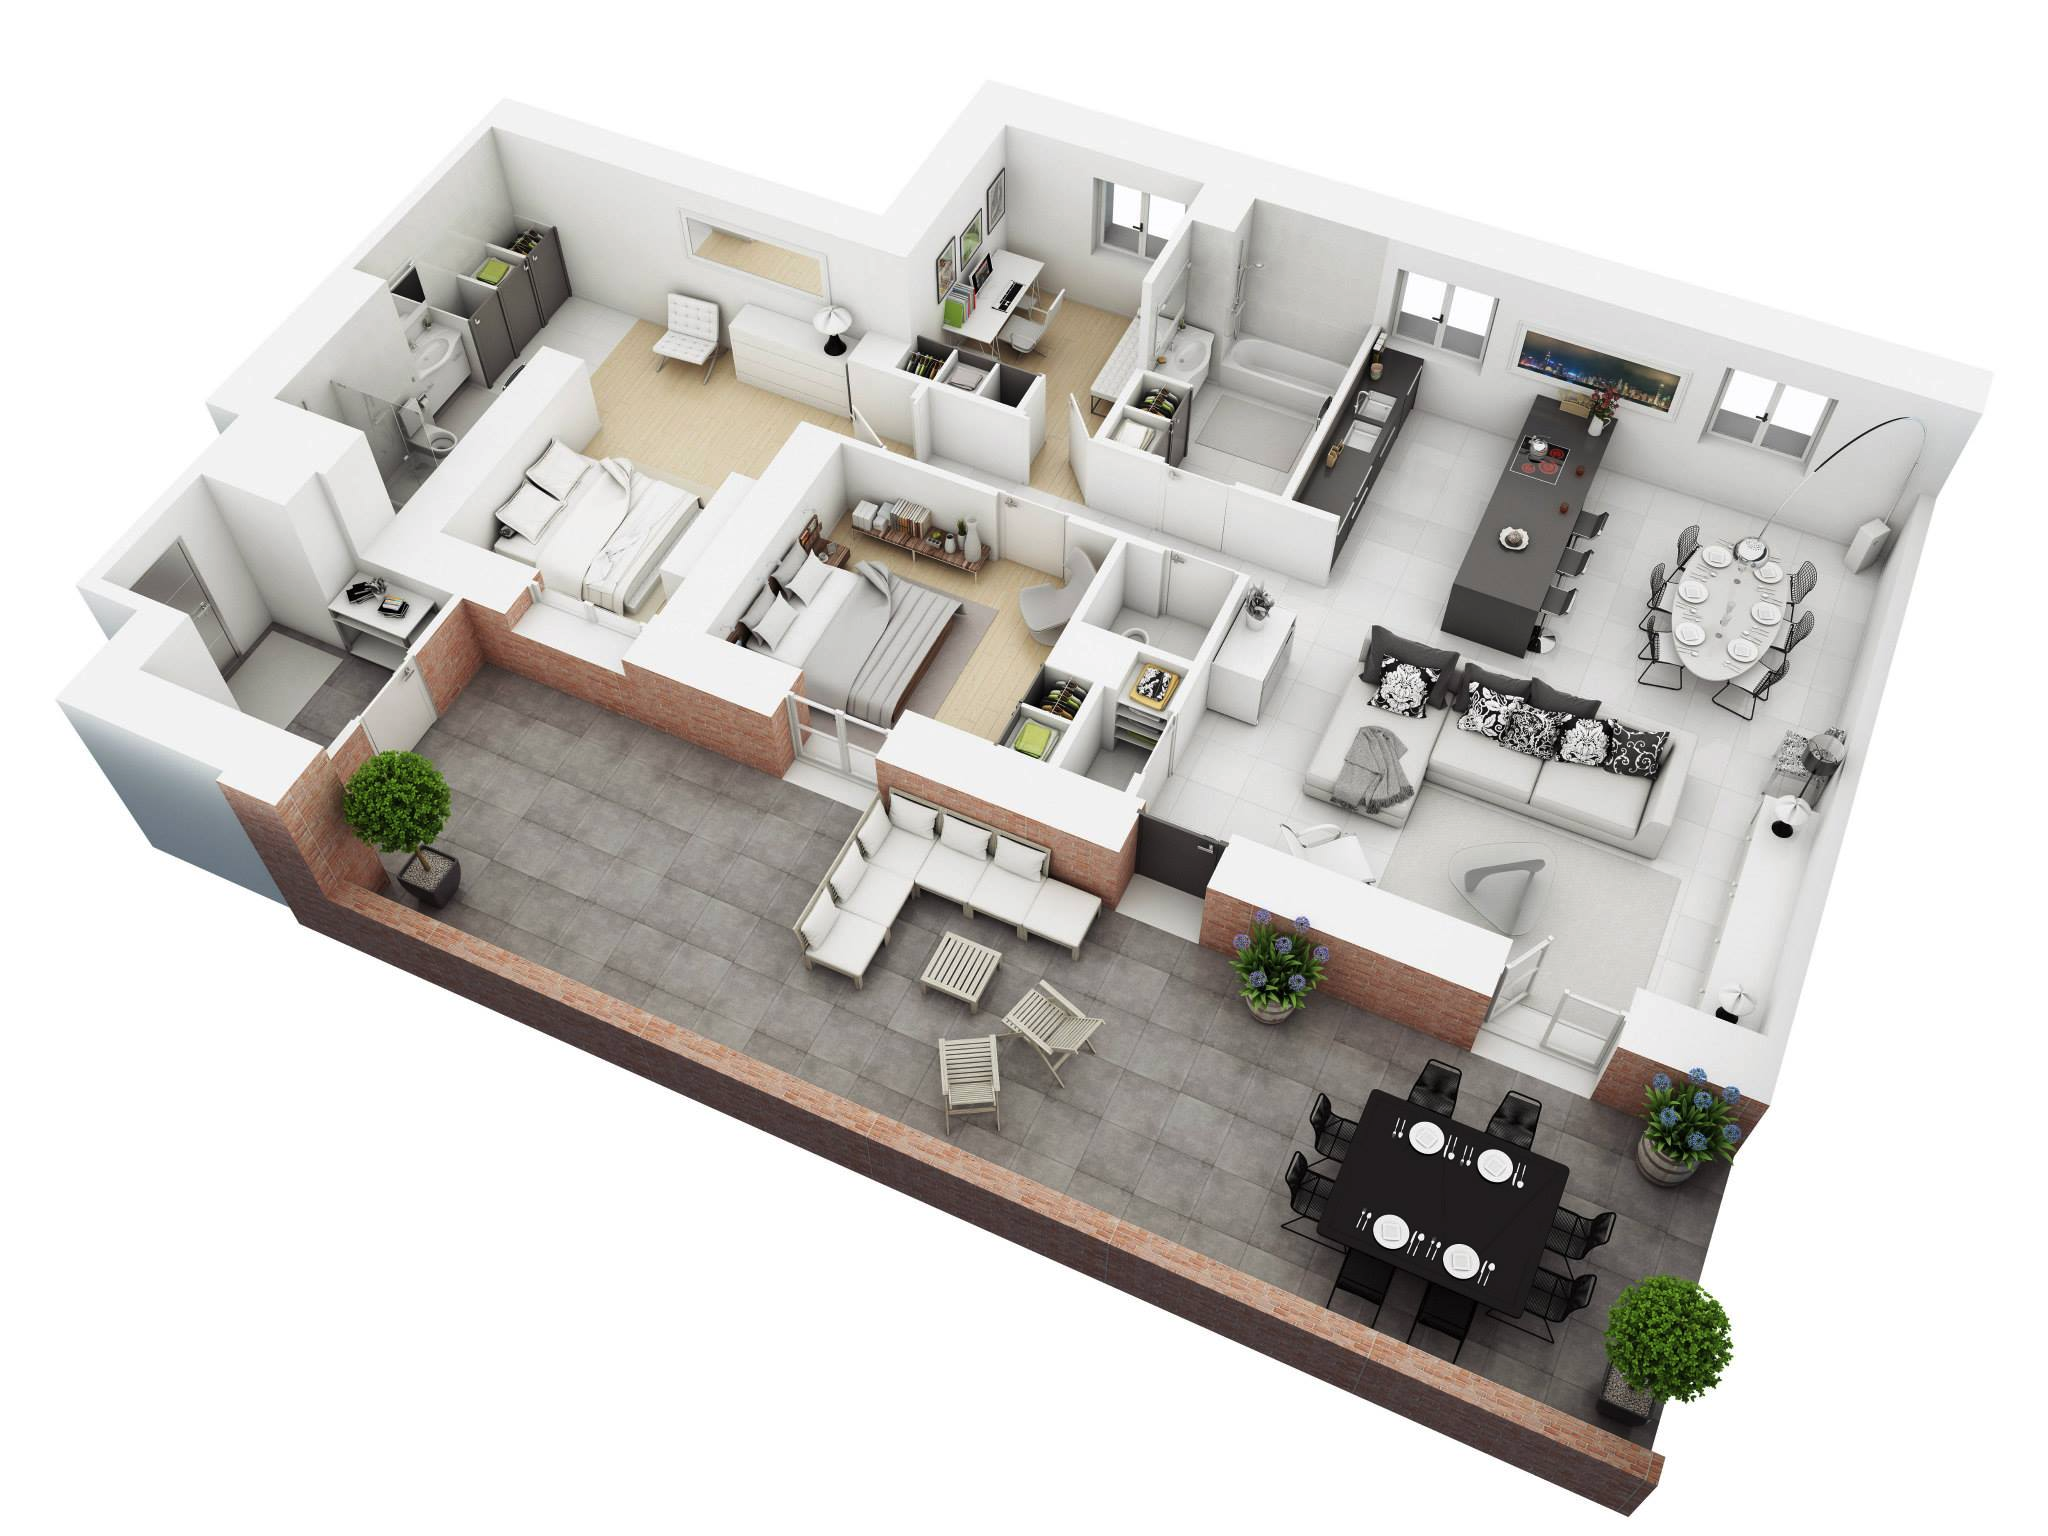 25 more 3 bedroom 3d floor plans - 3d Home Floor Plan